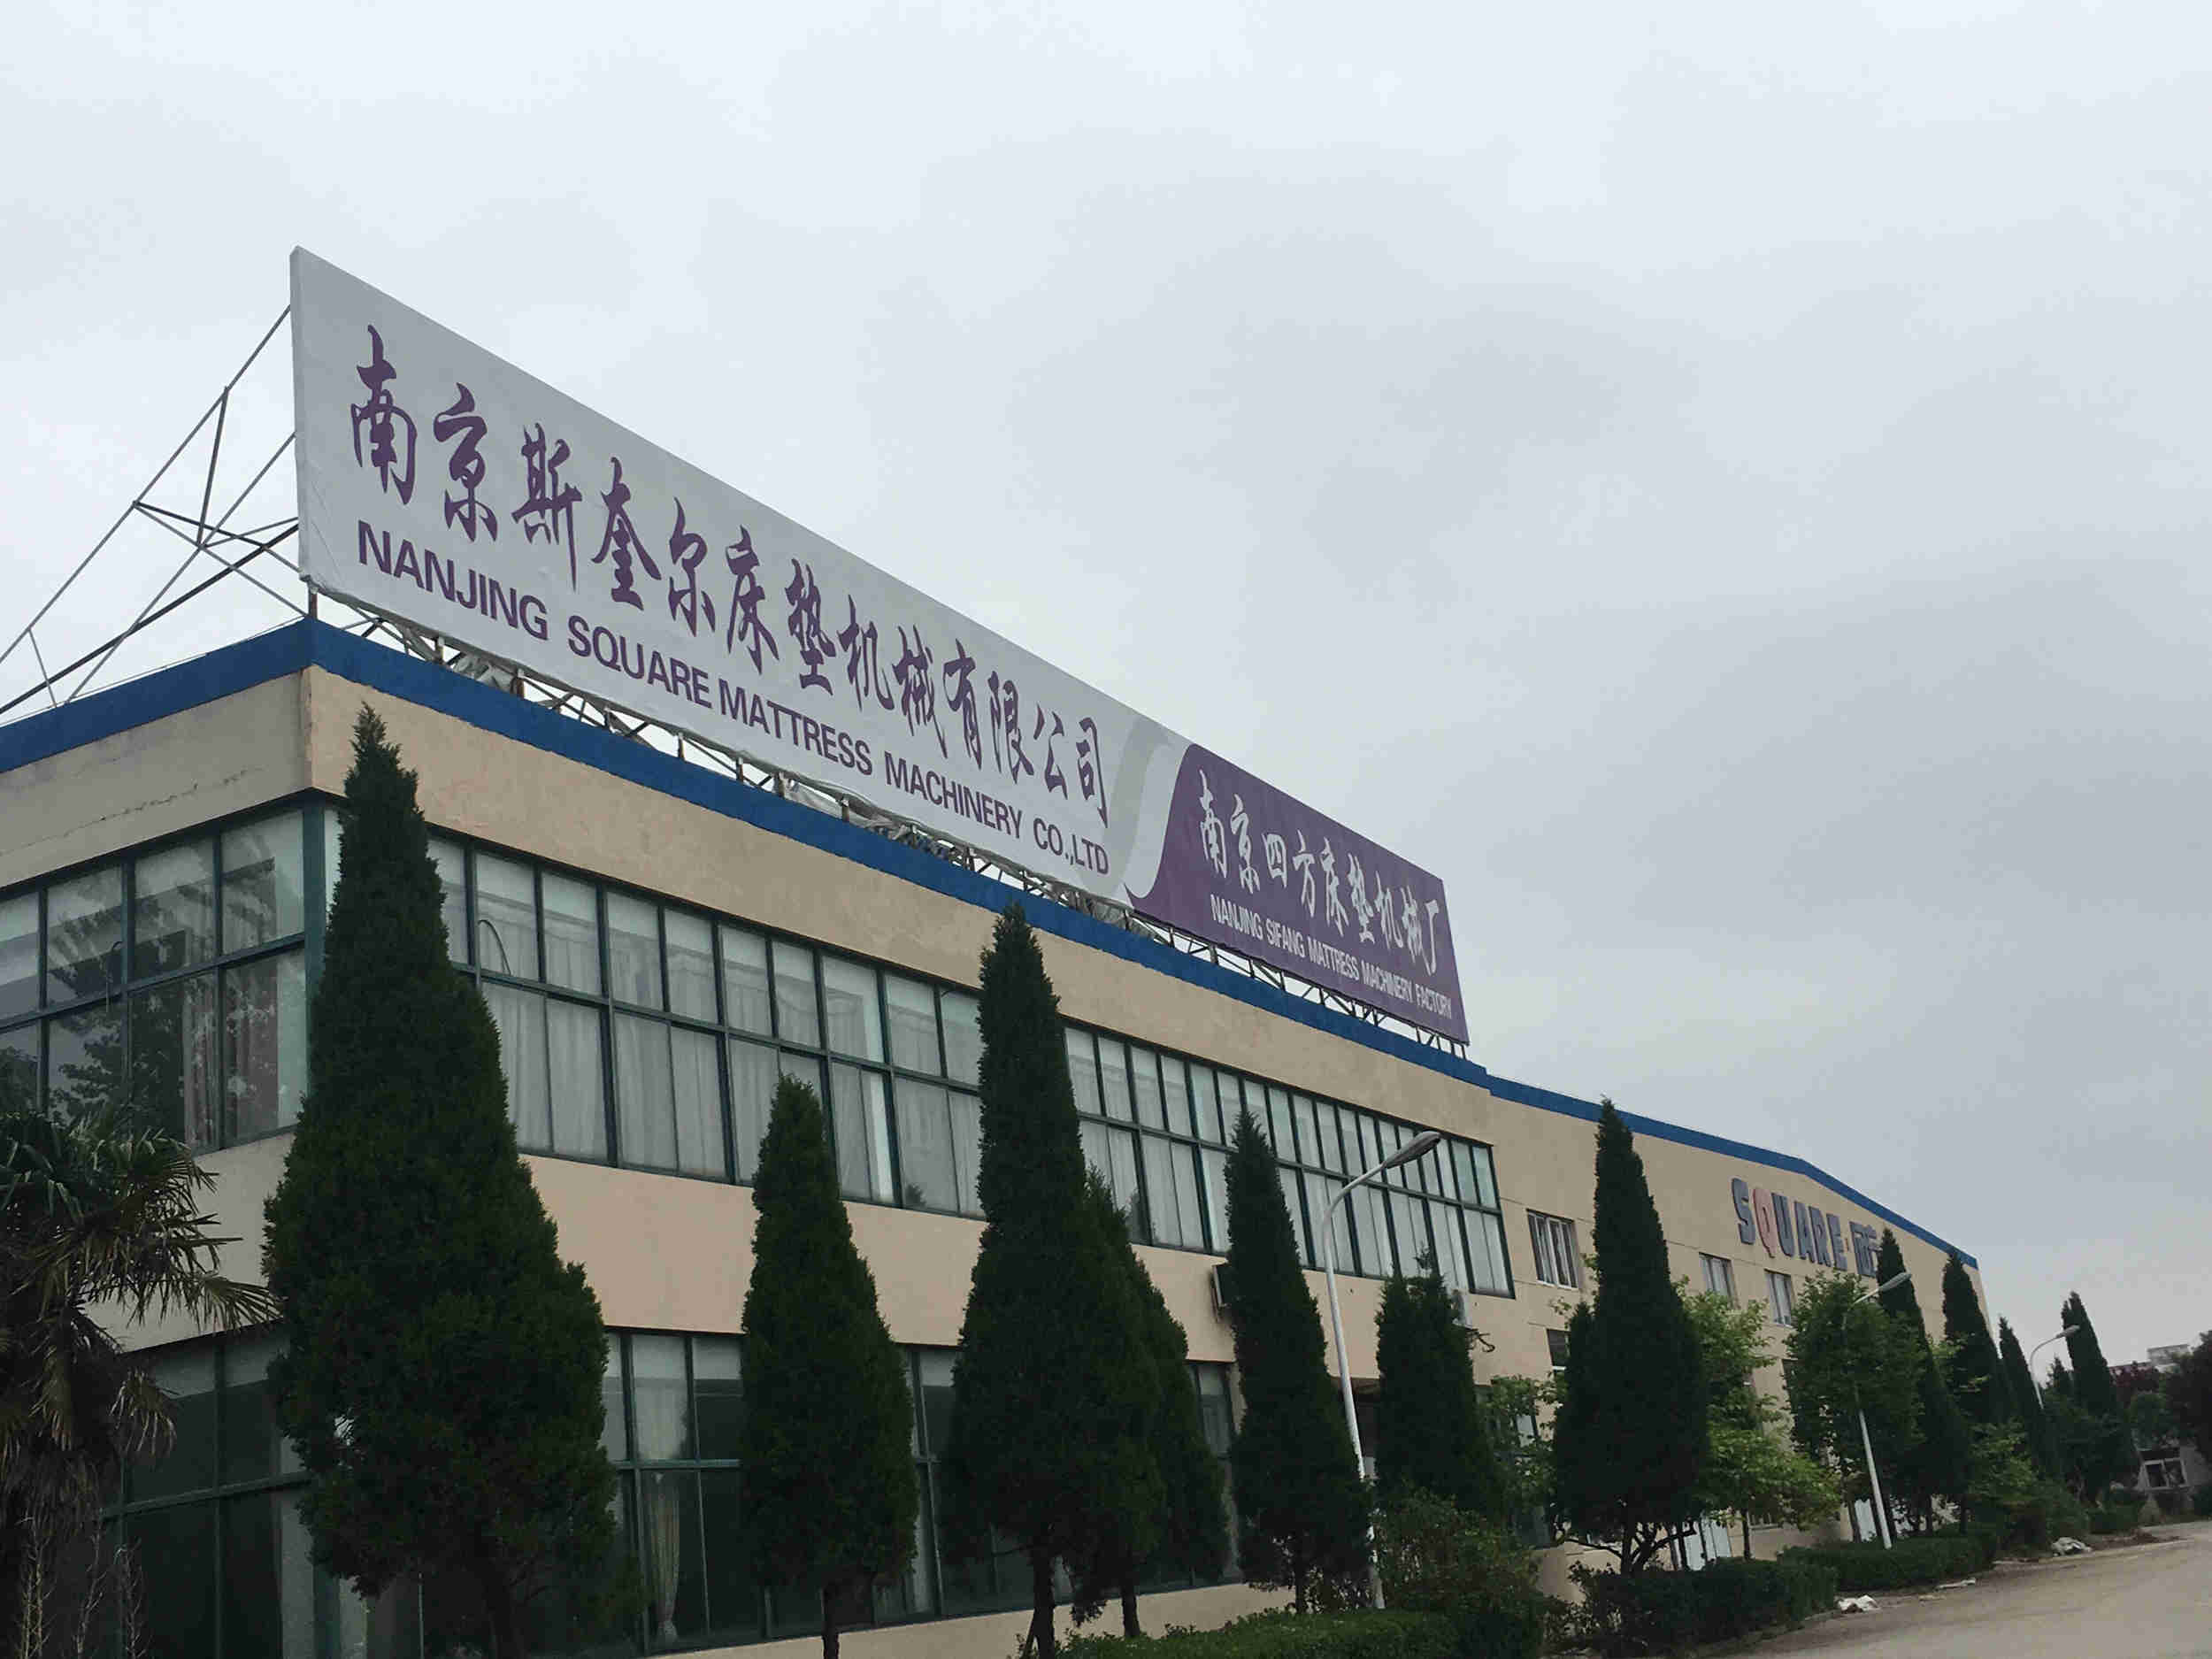 The development history of Nanjing Square Mattress Machinery Co., Ltd.